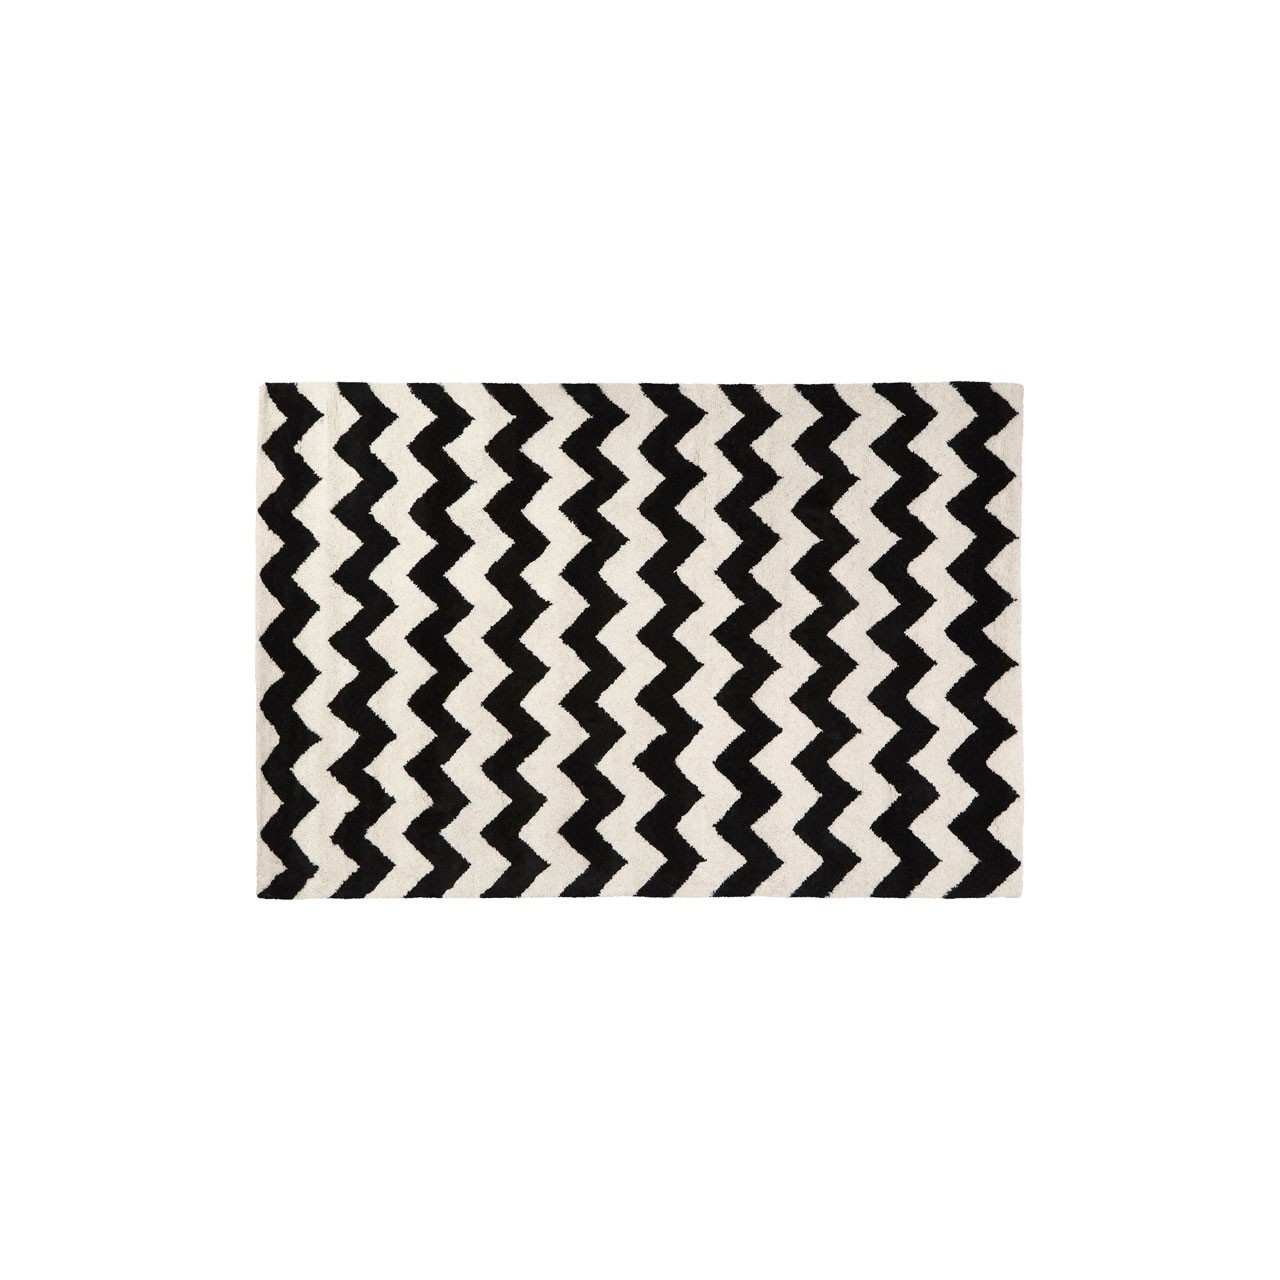 Prime Furnishing South Beach Rug - Black/White